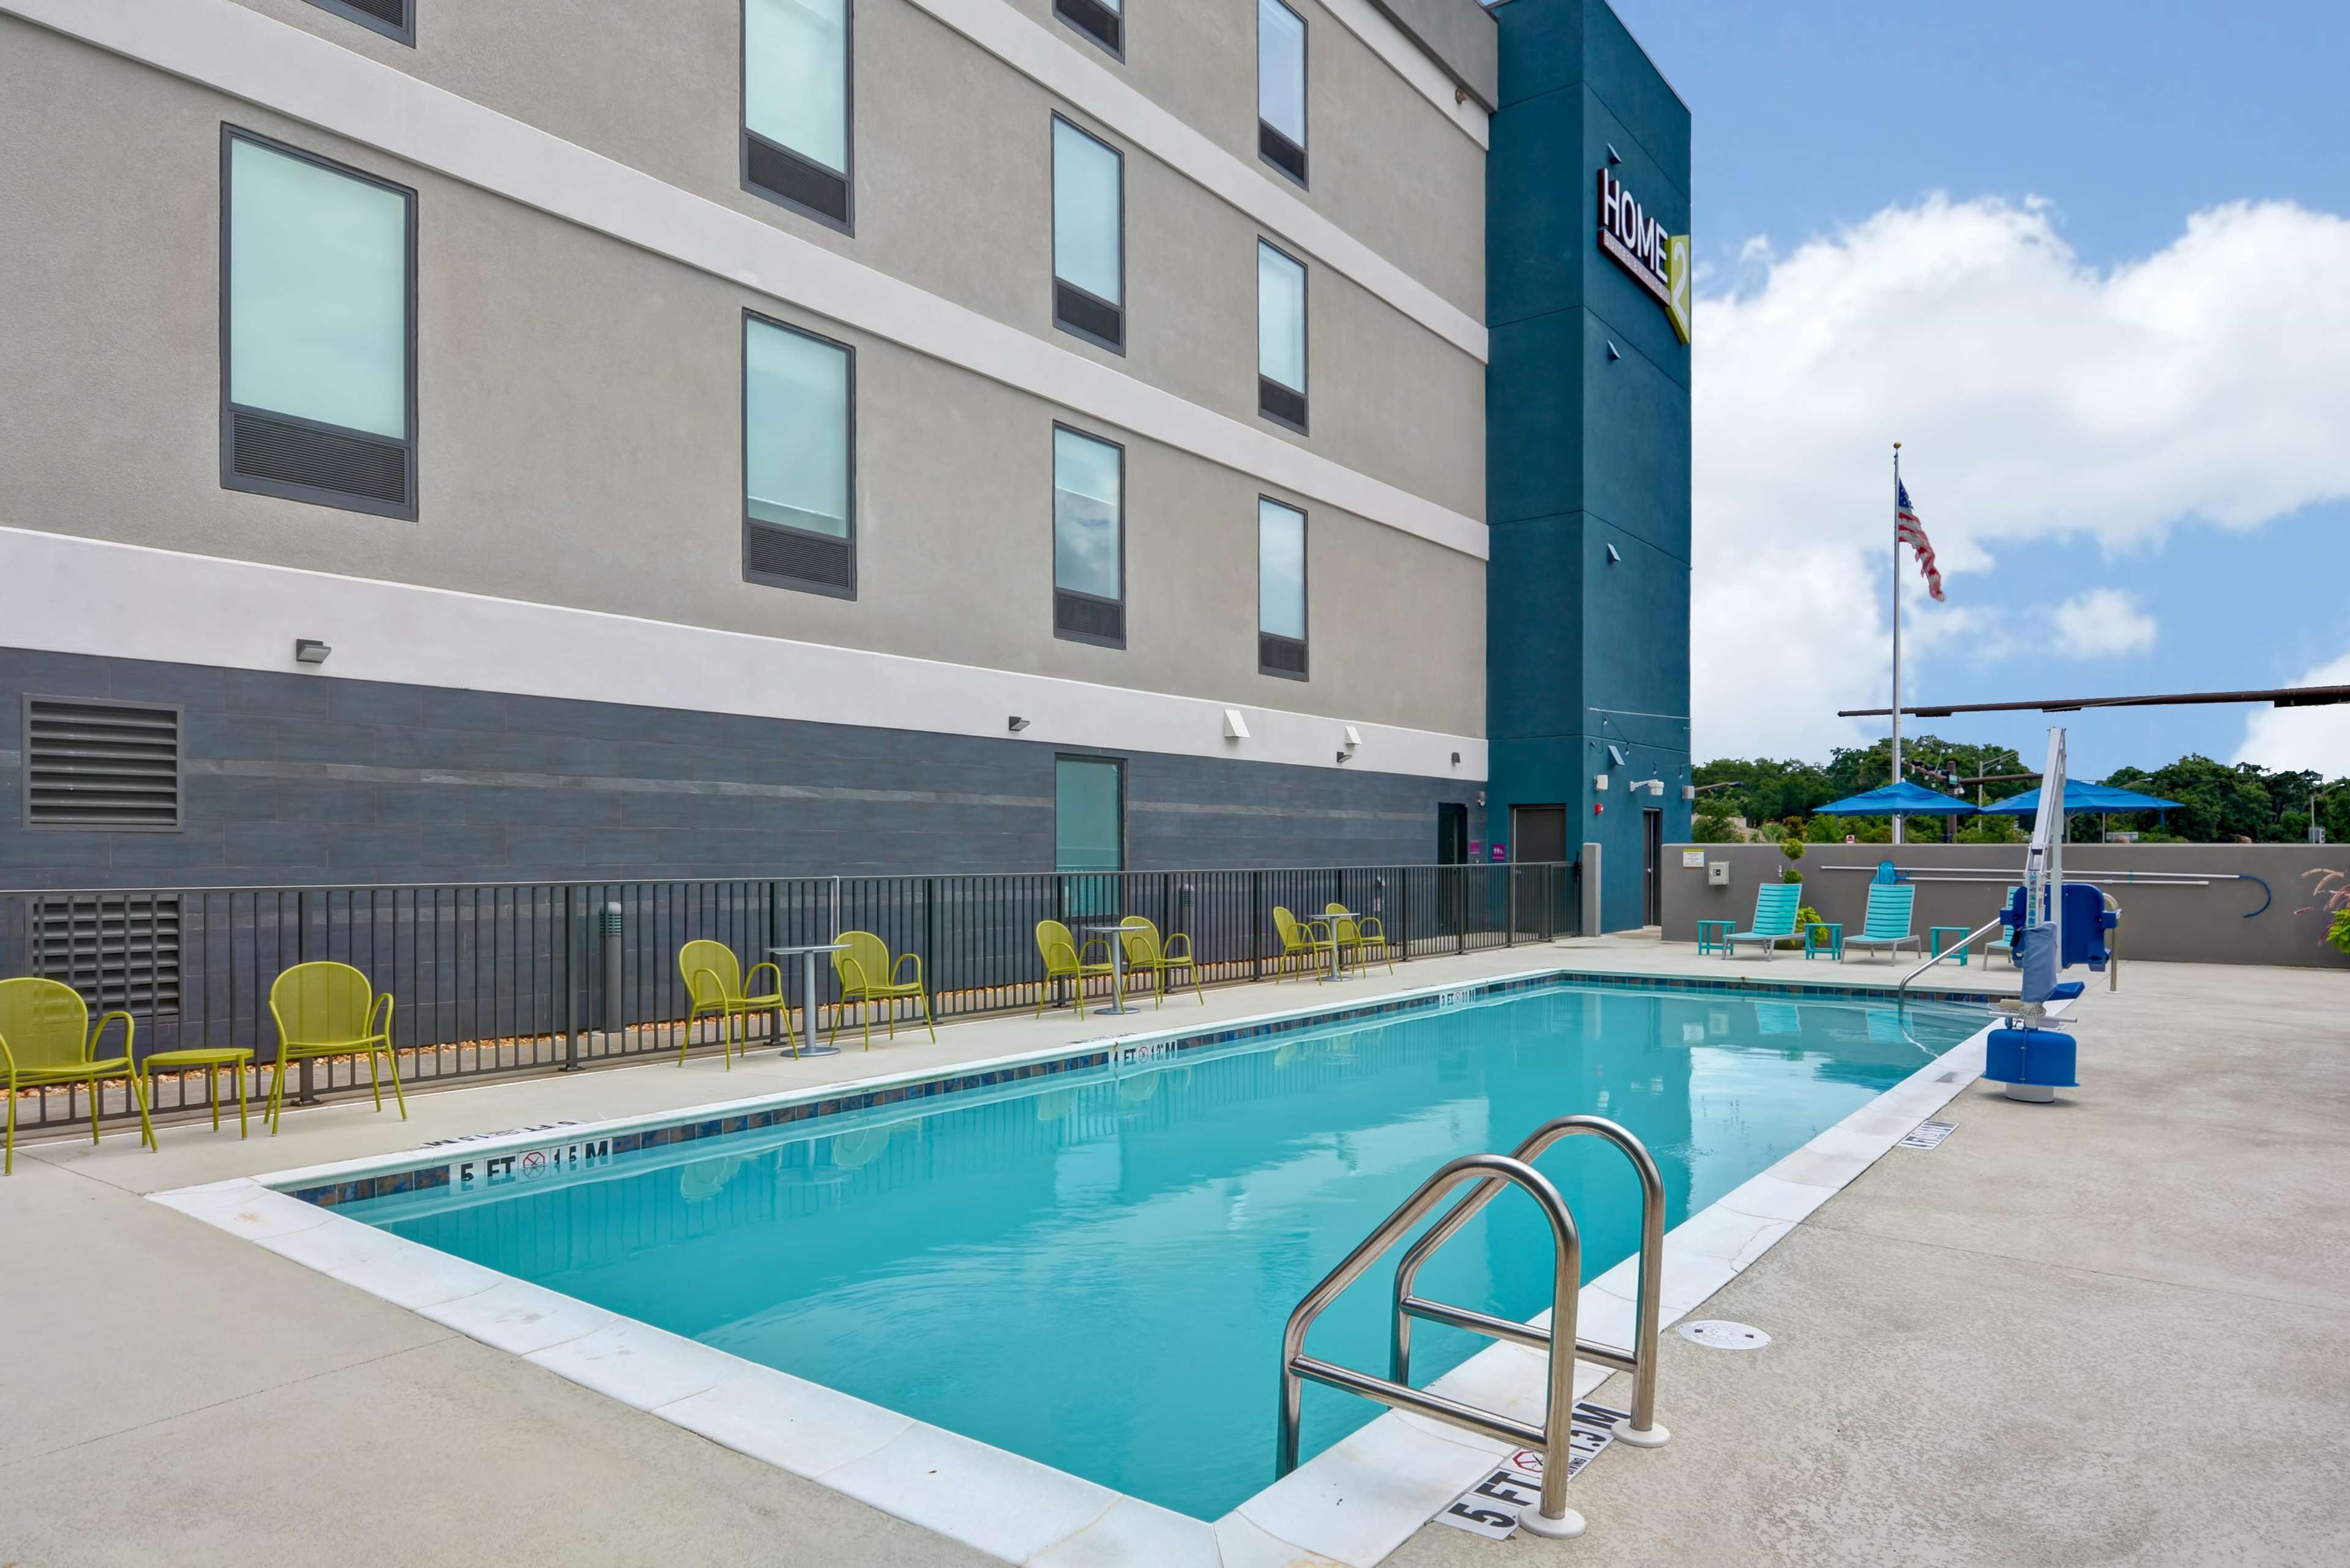 Home2 Suites by Hilton Pensacola I-10 at North Davis Hwy image 14